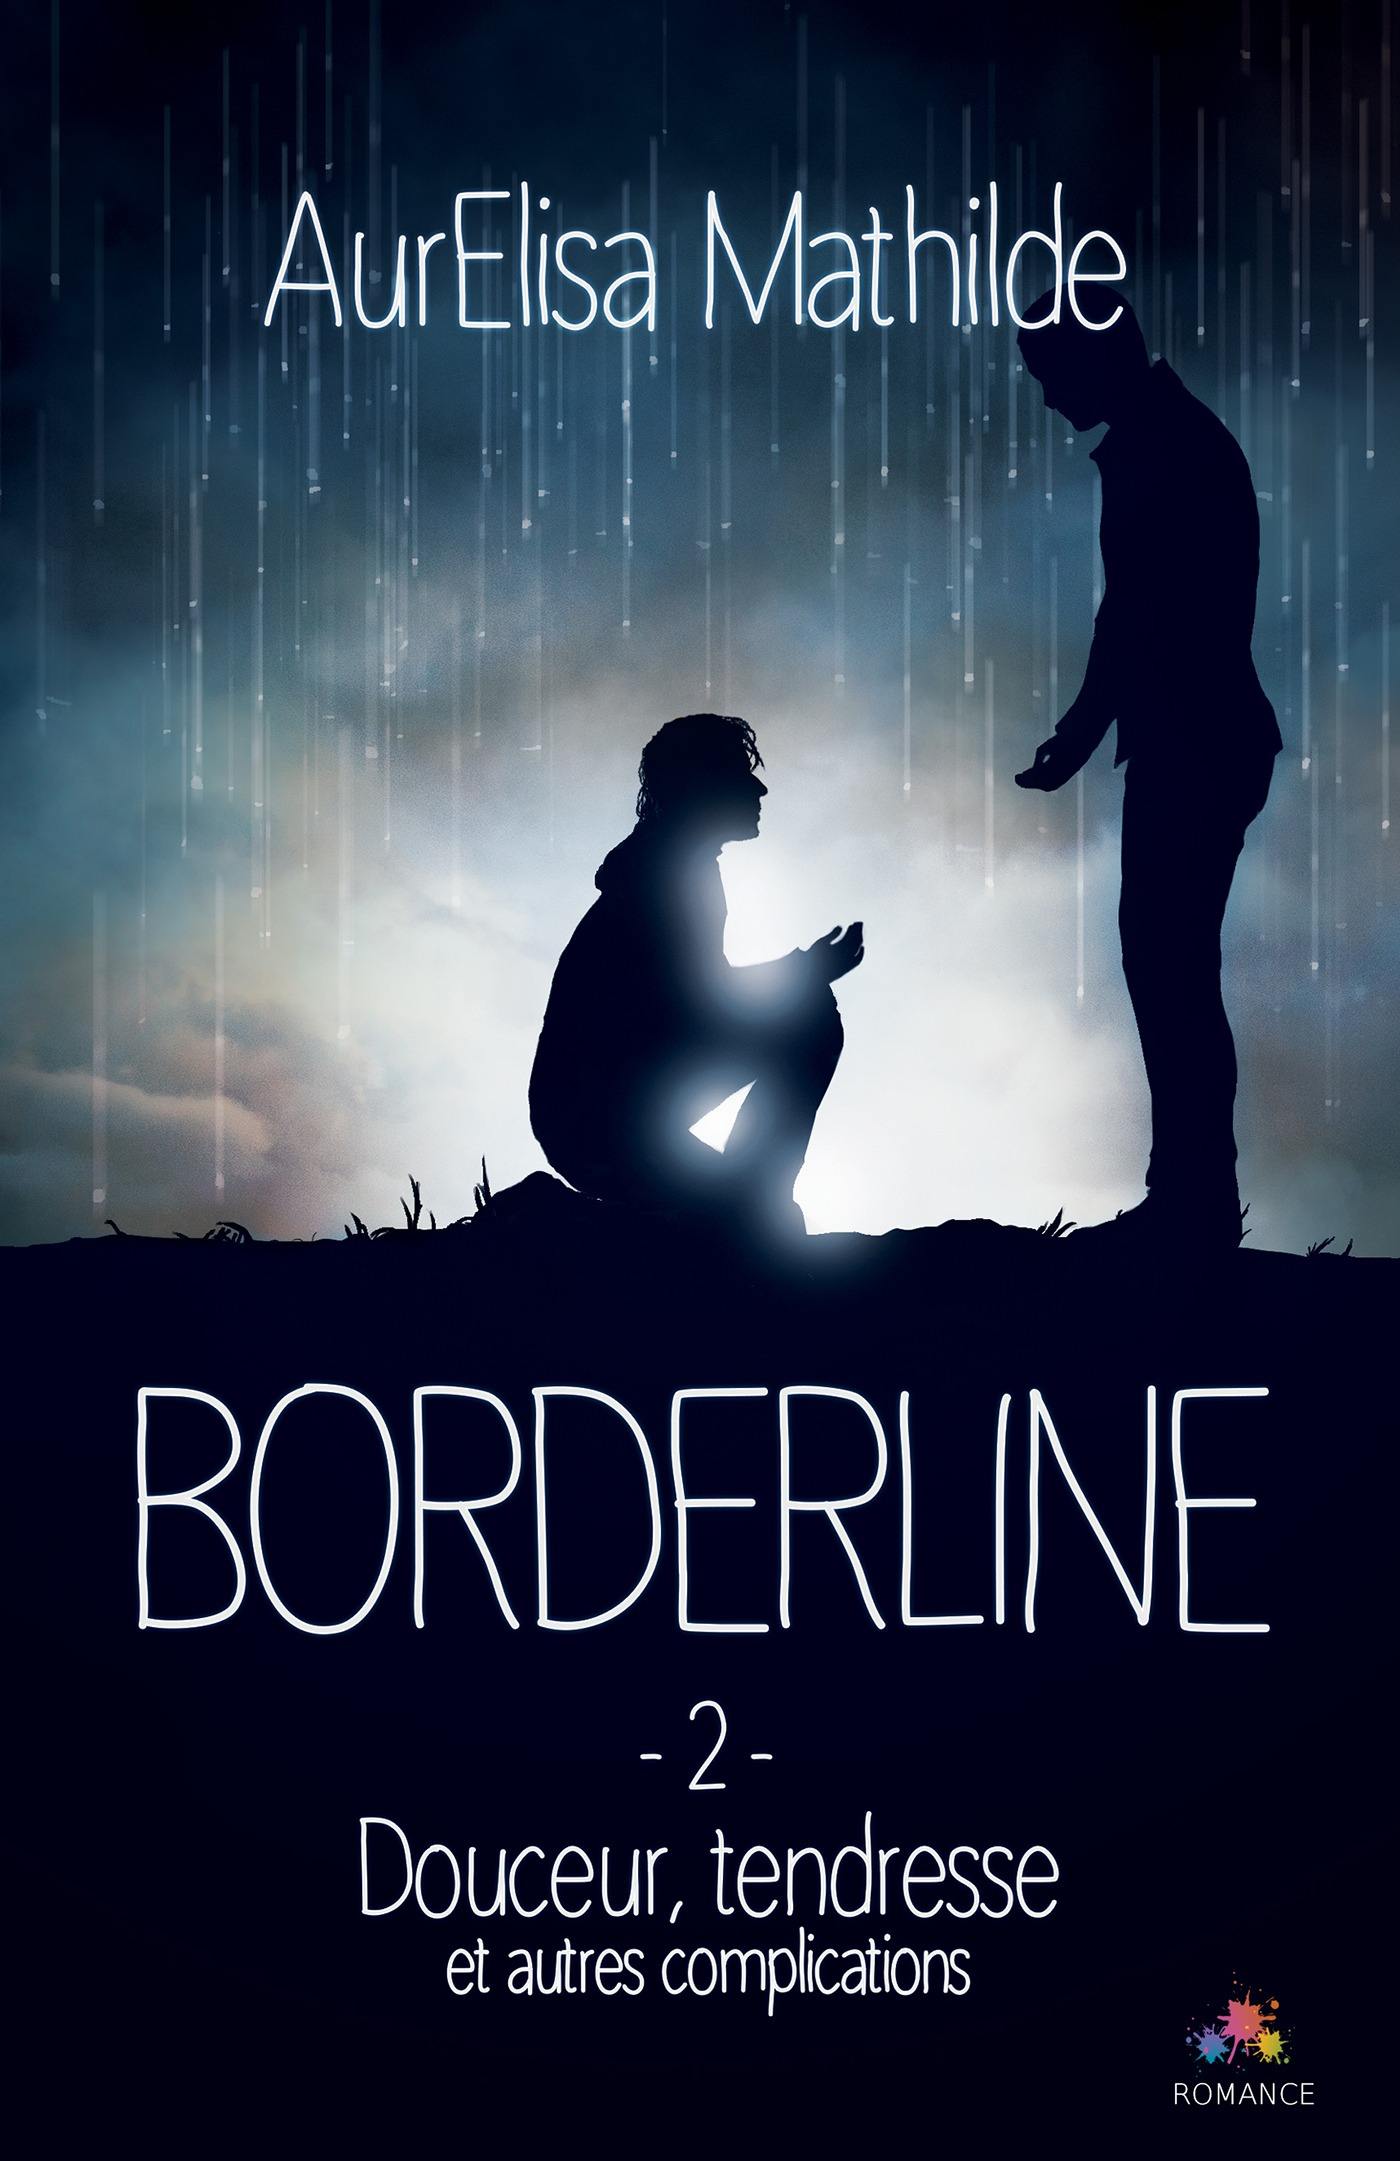 Douceur, tendresse et autres complications, BORDERLINE, T2